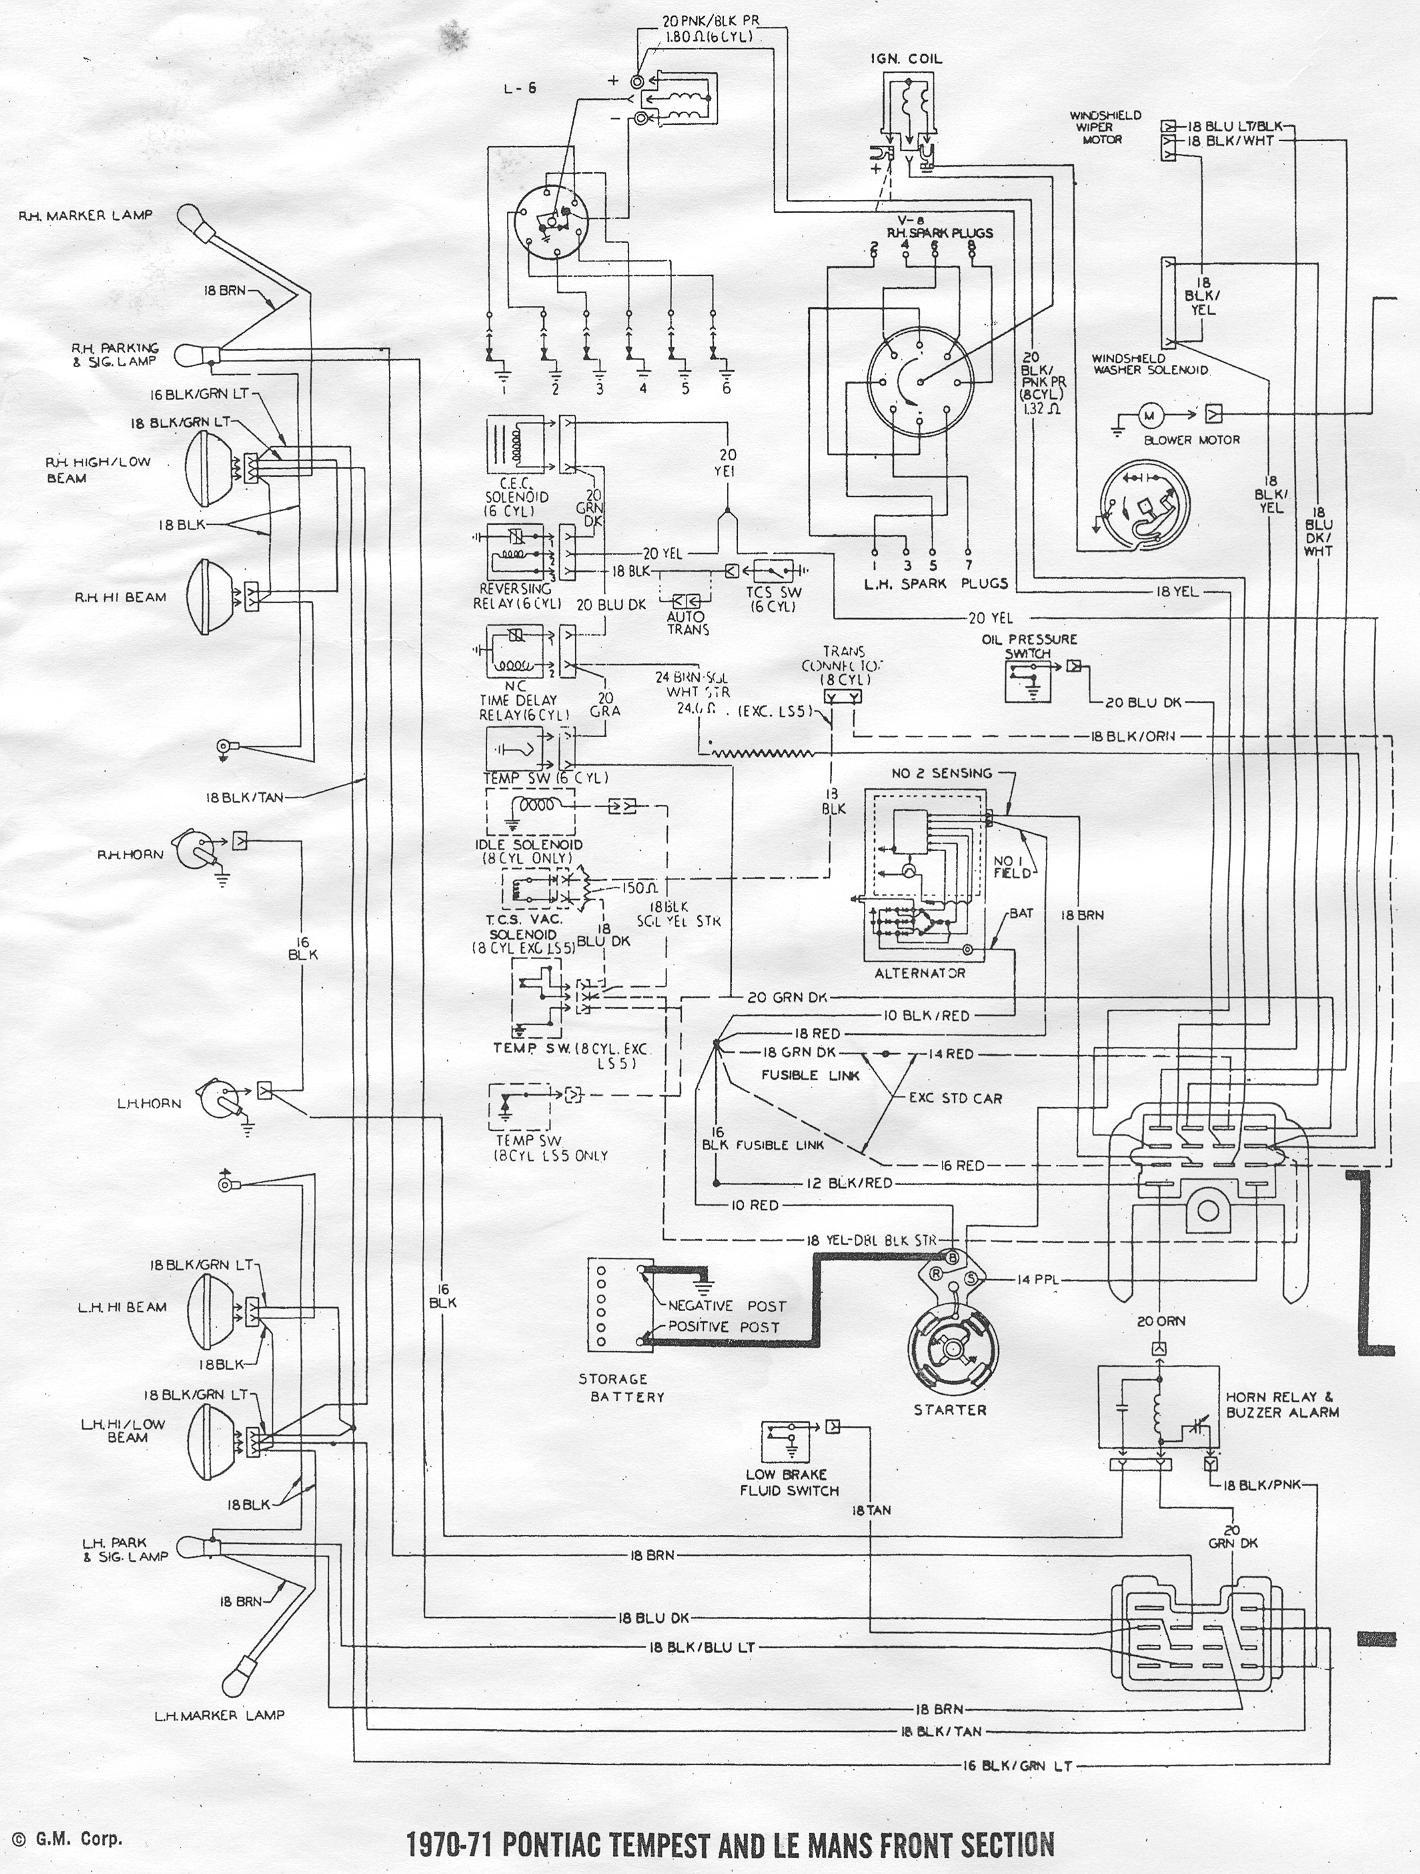 DIAGRAM] 68 Gto Wiring Diagram - Wiring Diagram For Dryers List  audio.mon1erinstrument.frmon1erinstrument.fr